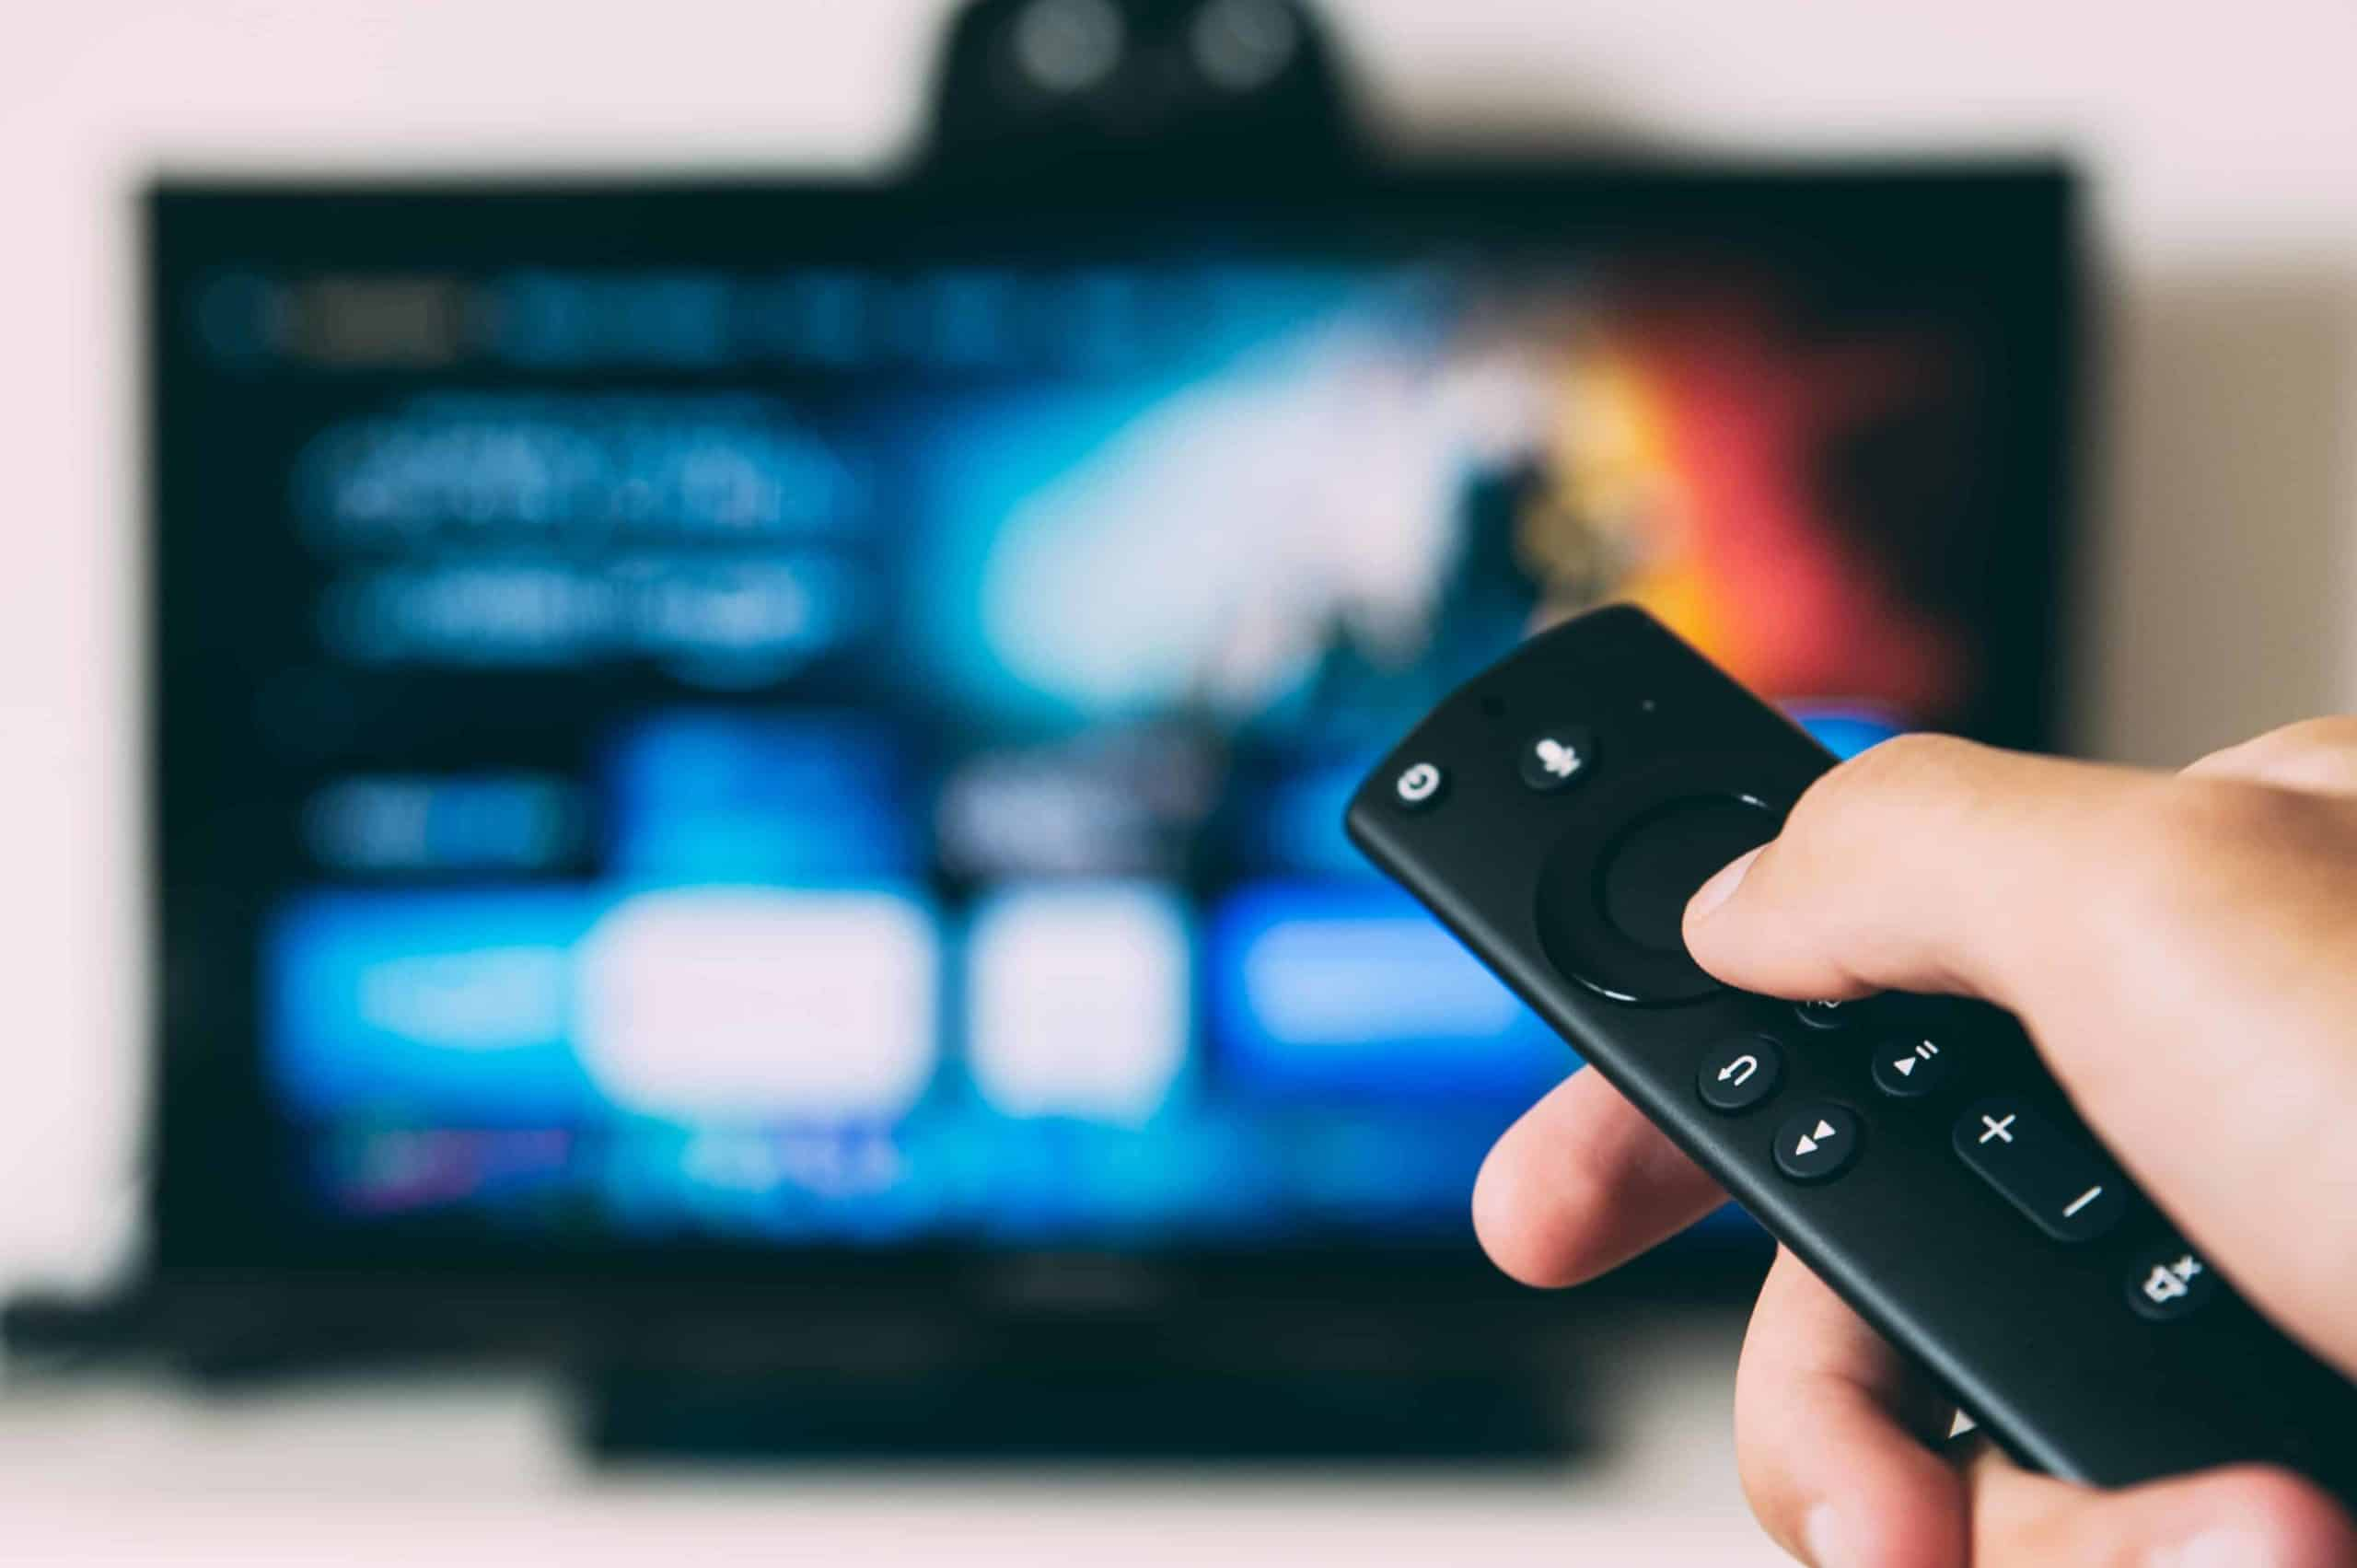 Fire TV users doubled entertainment content consumption in India: Amazon Report